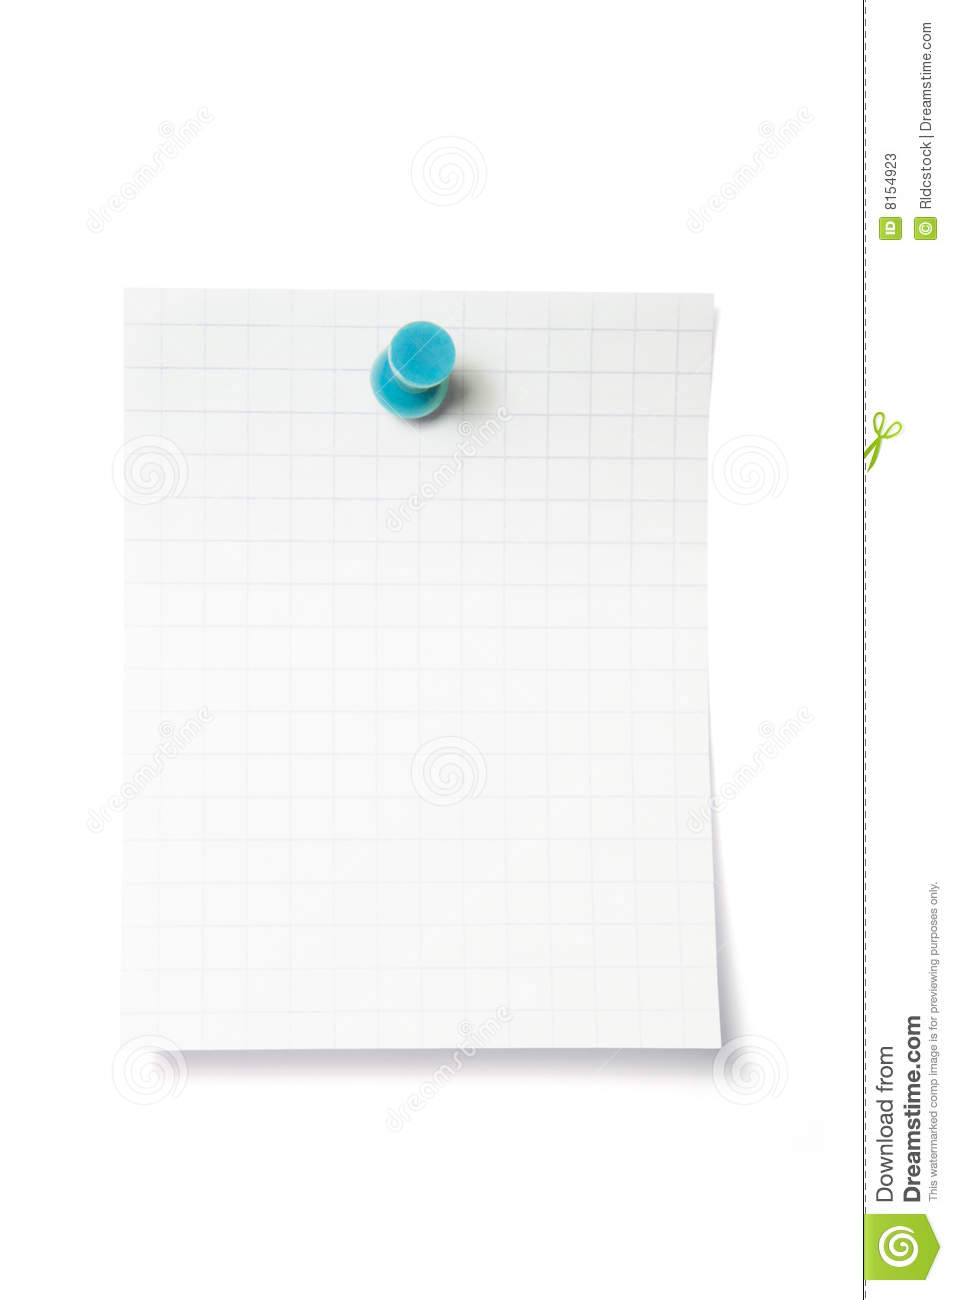 Thumbtack On Note With Clipping Path Stock Photos - Image ...